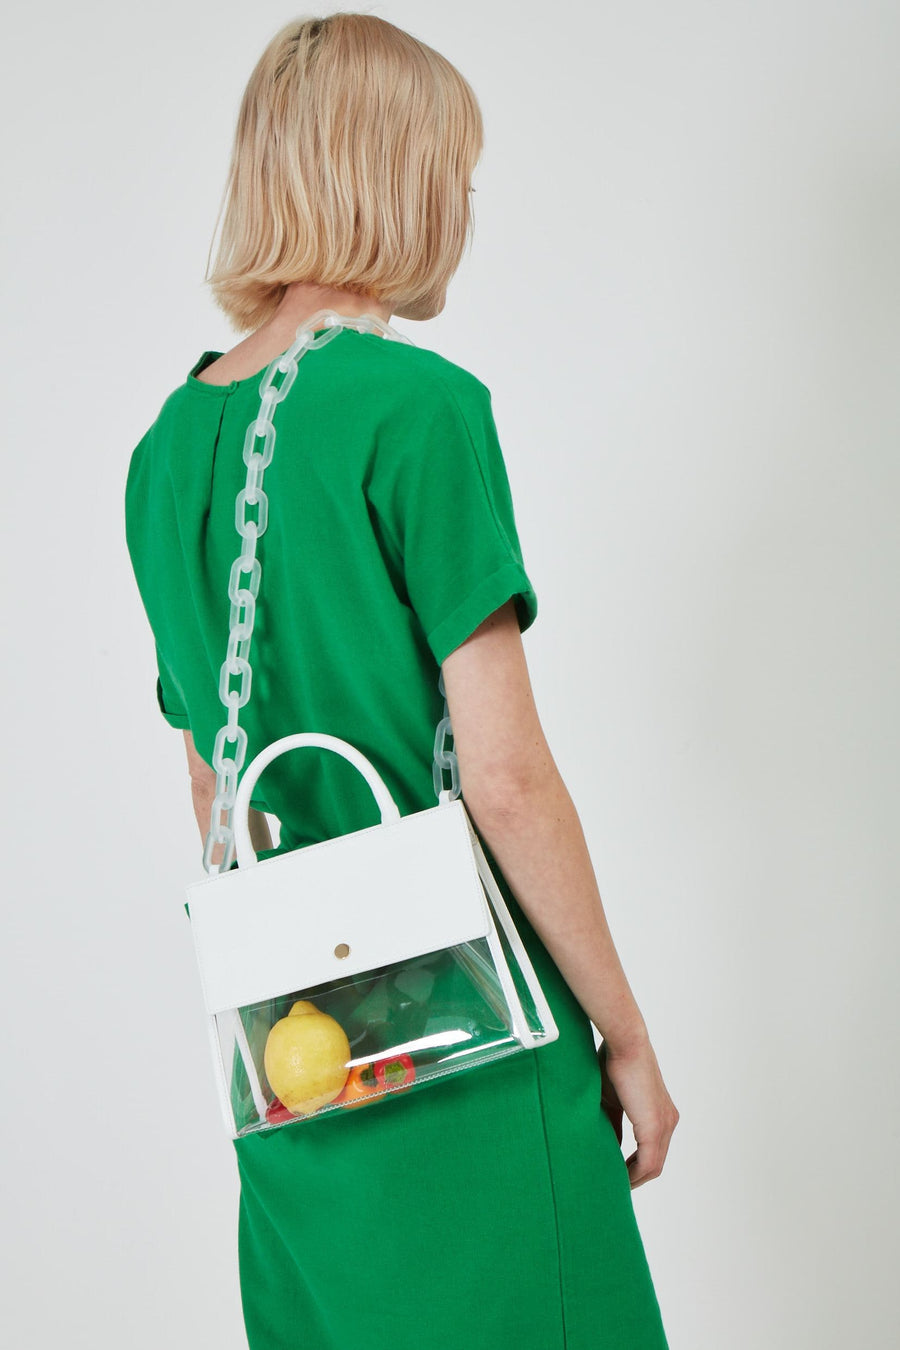 Clear Harper Tote - Bright White - OAD NEW YORK